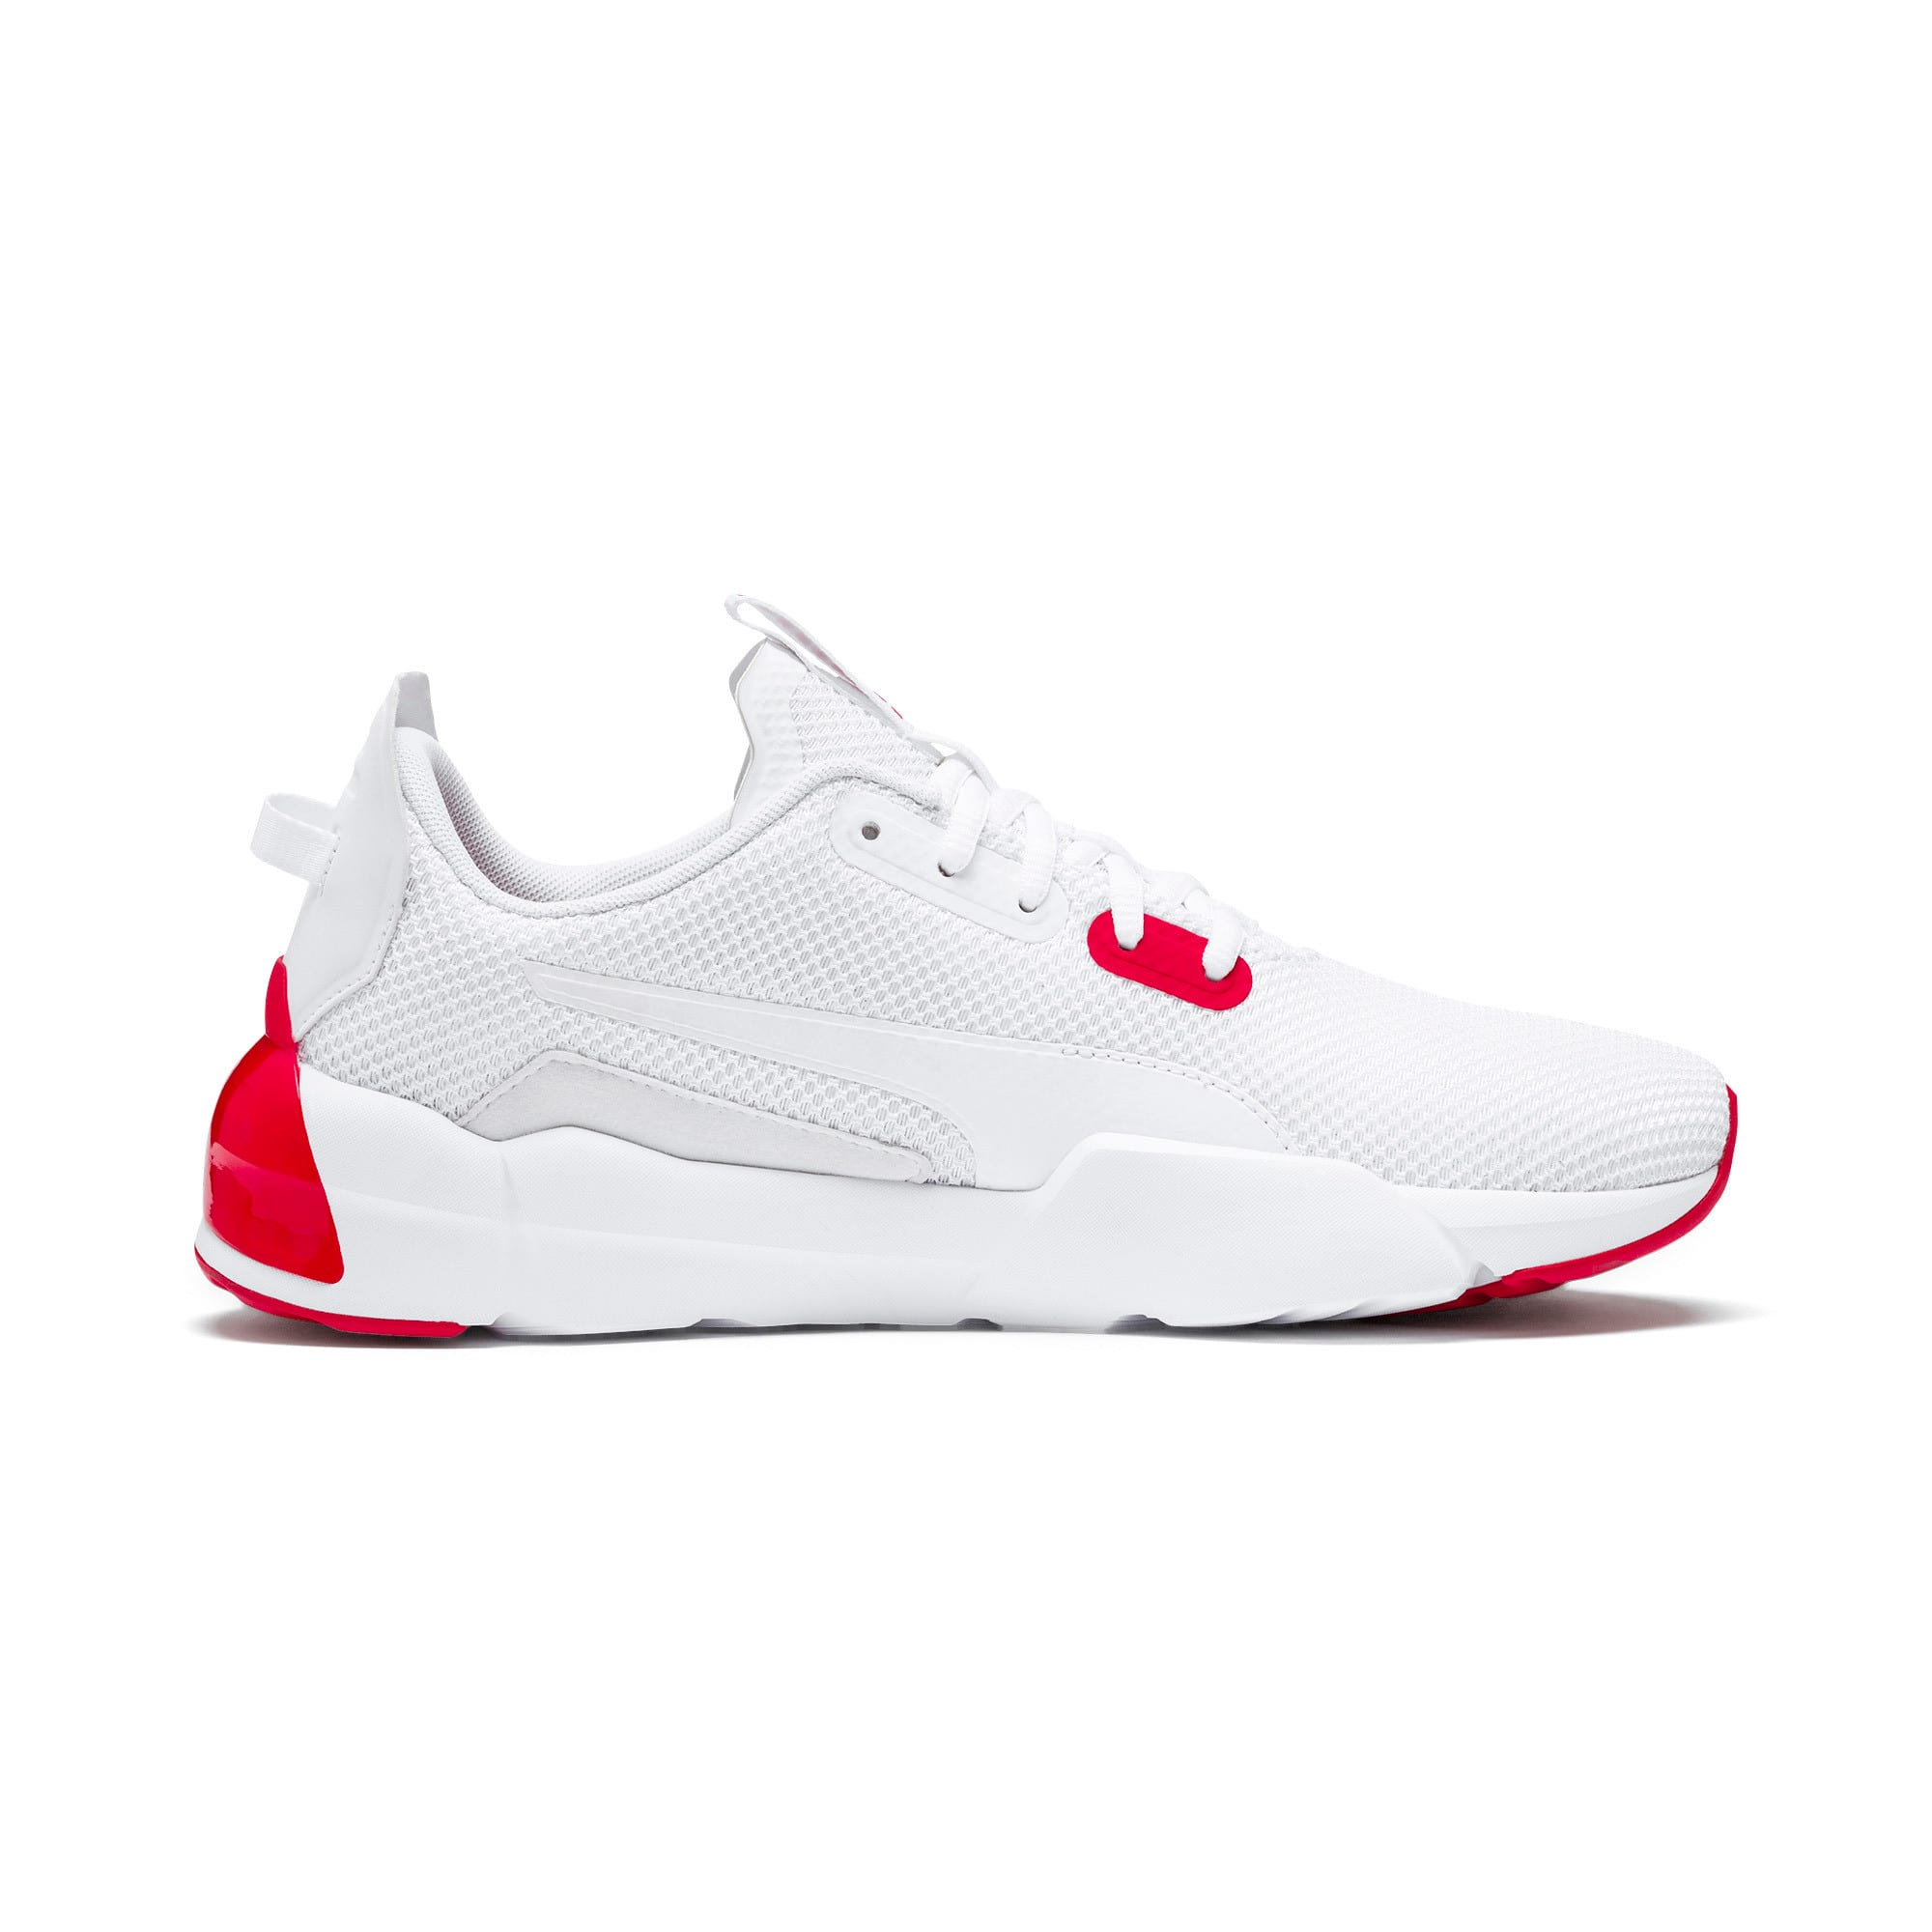 Thumbnail 6 of CELL Phase Men's Training Shoes, Puma White-High Risk Red, medium